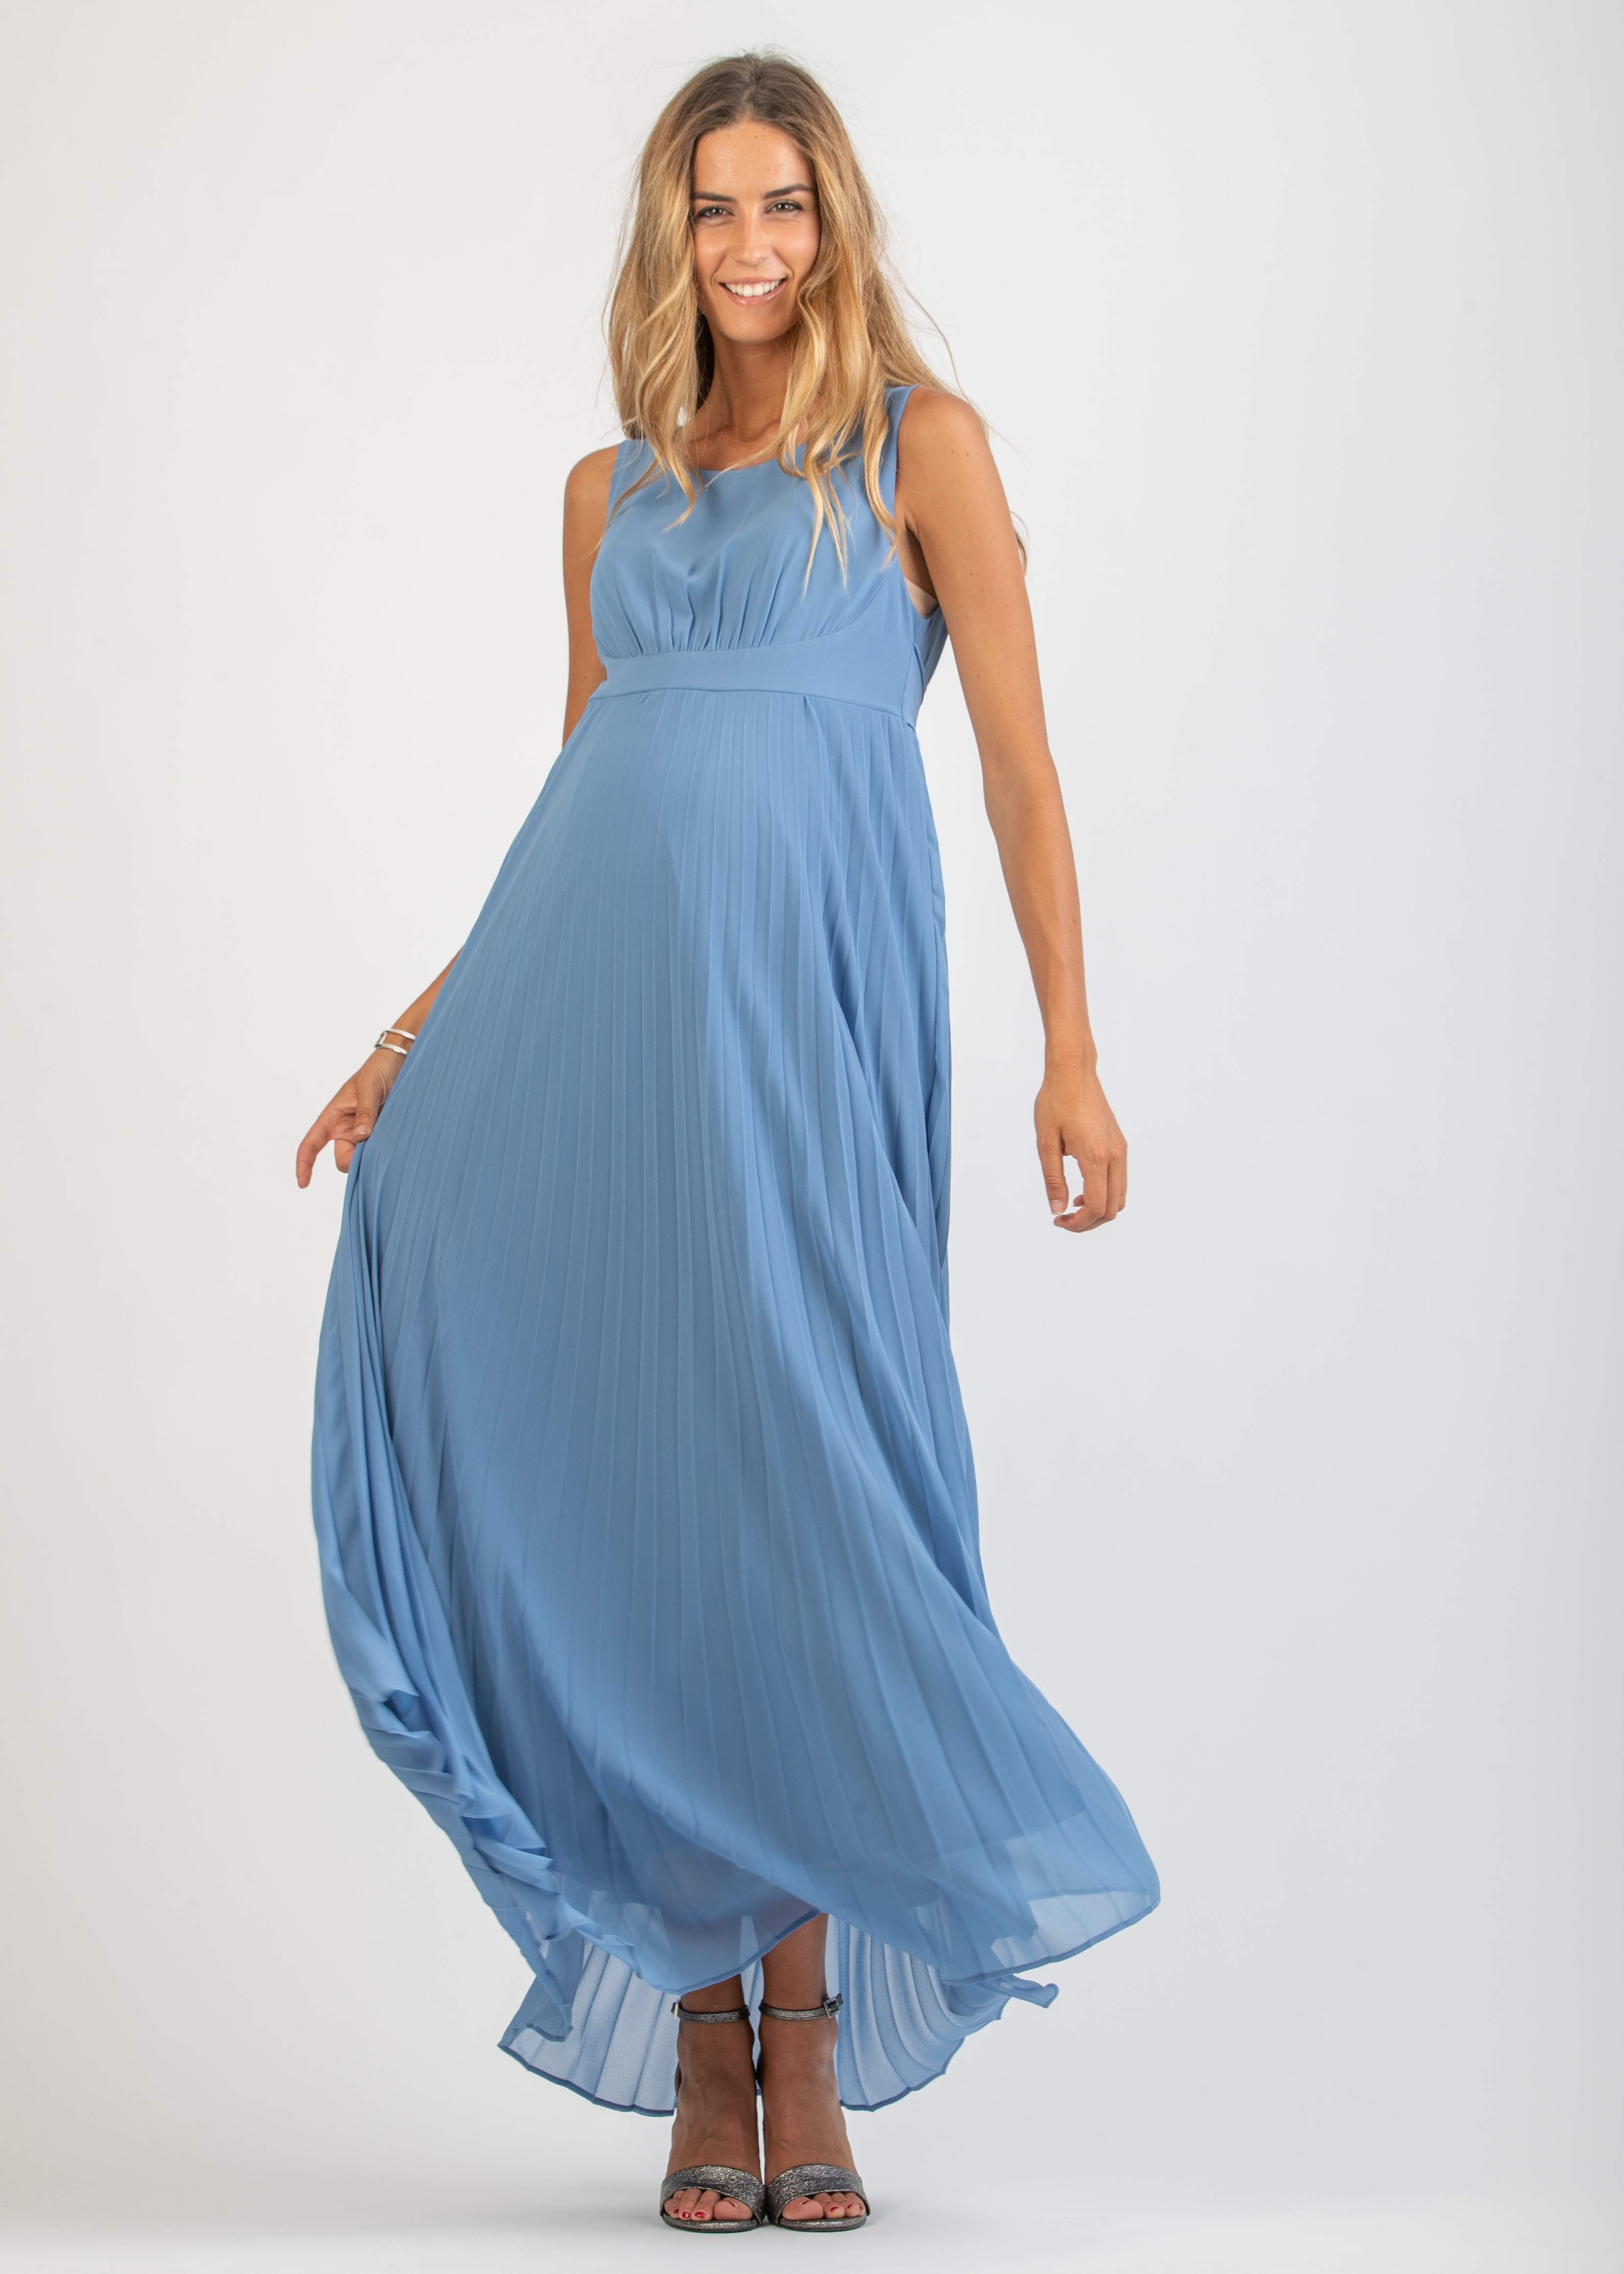 Long Maternity Dress with Soleil Pleated Skirt